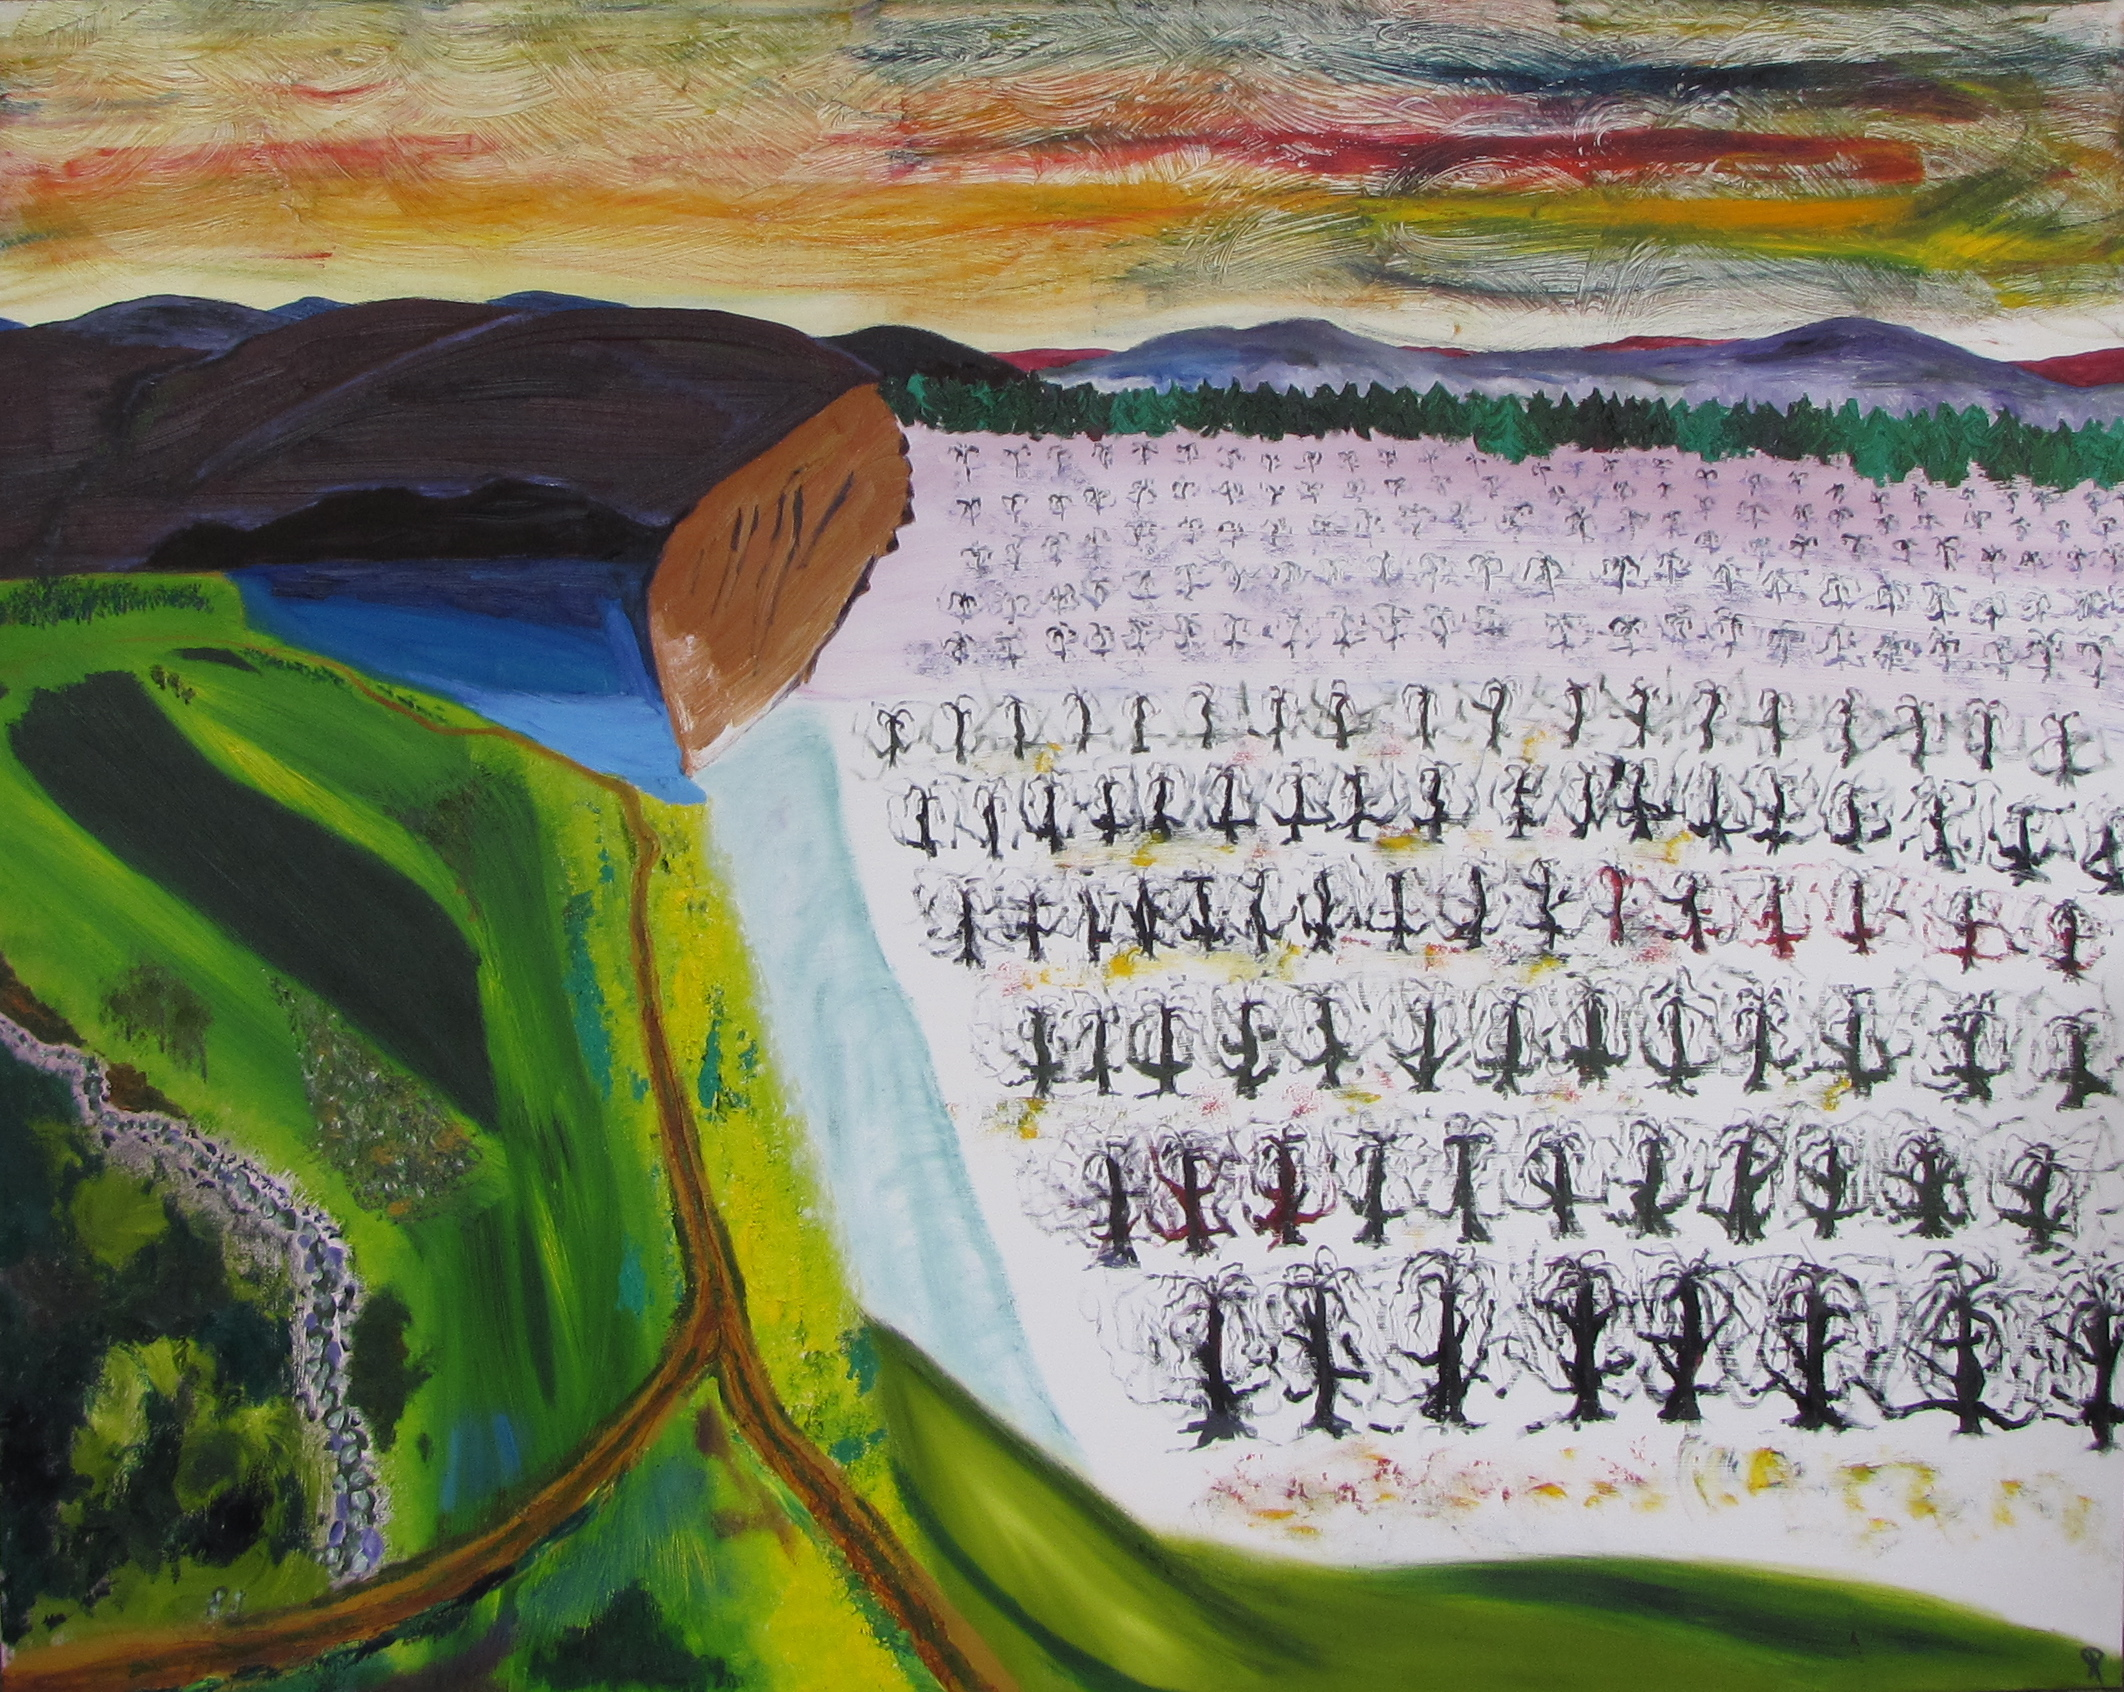 Orchard, November Dawn, Russell Steven Powell oil on canvas, 60x48